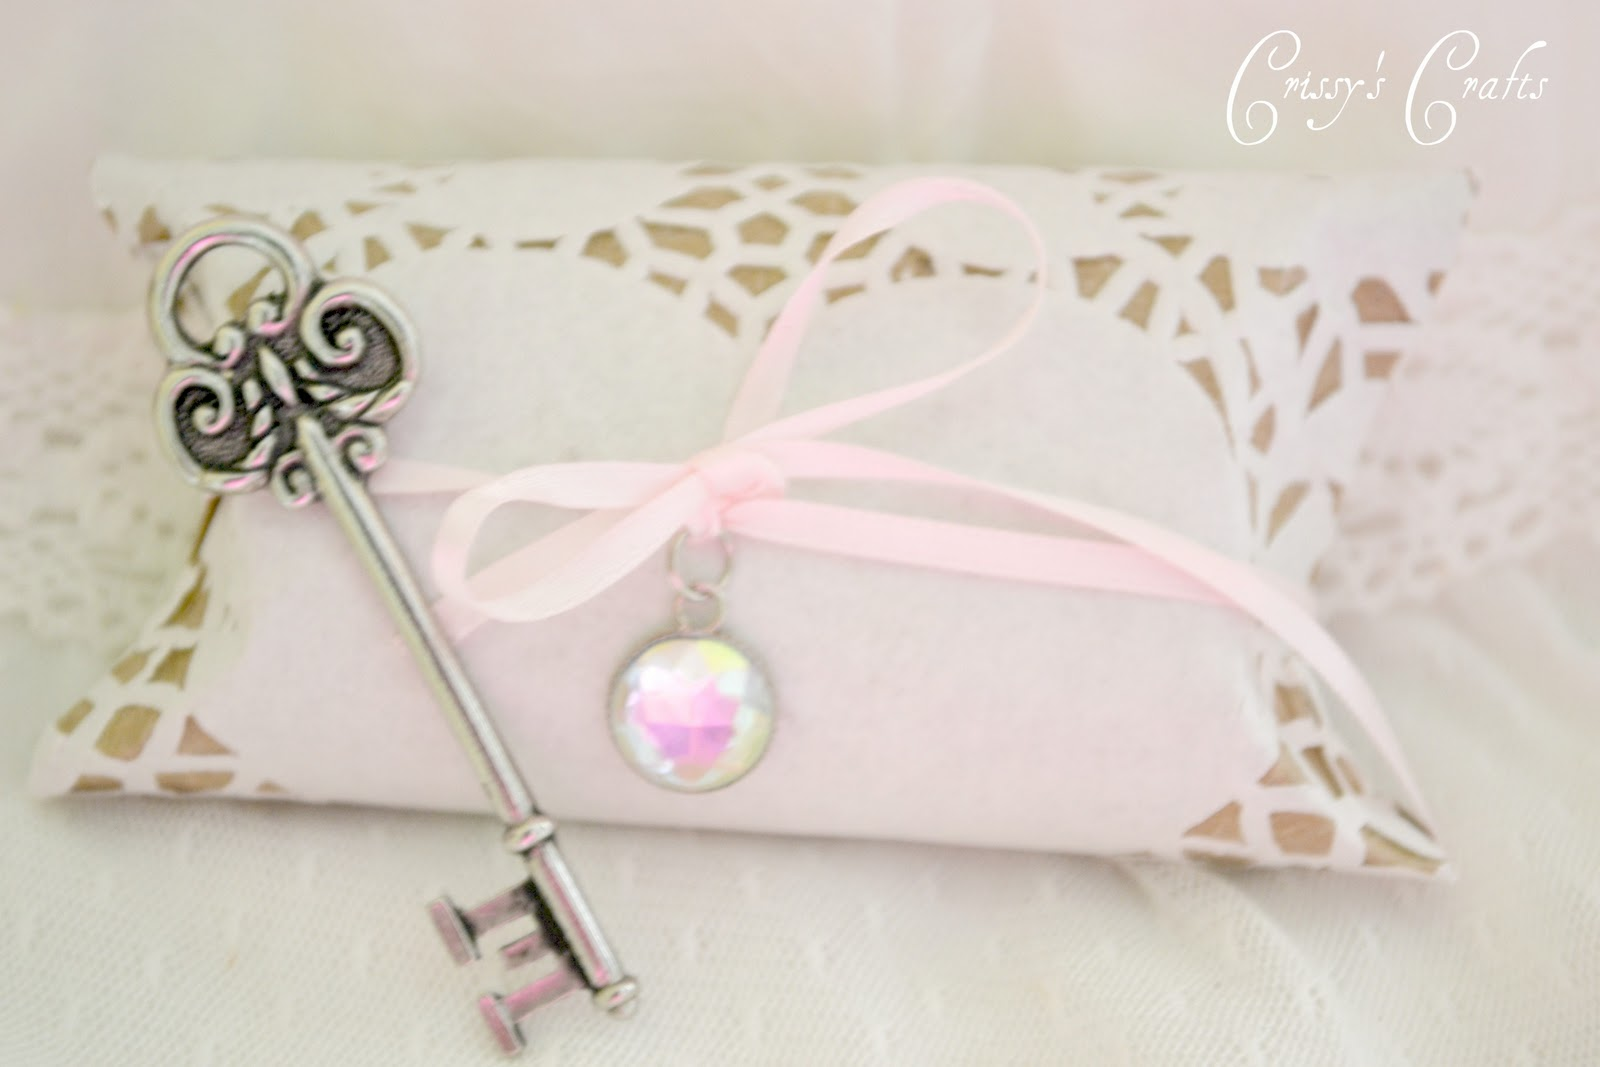 In Style Party Favors: Crissy's Crafts: TP Roll Pillow Box Favor {Vintage Style}